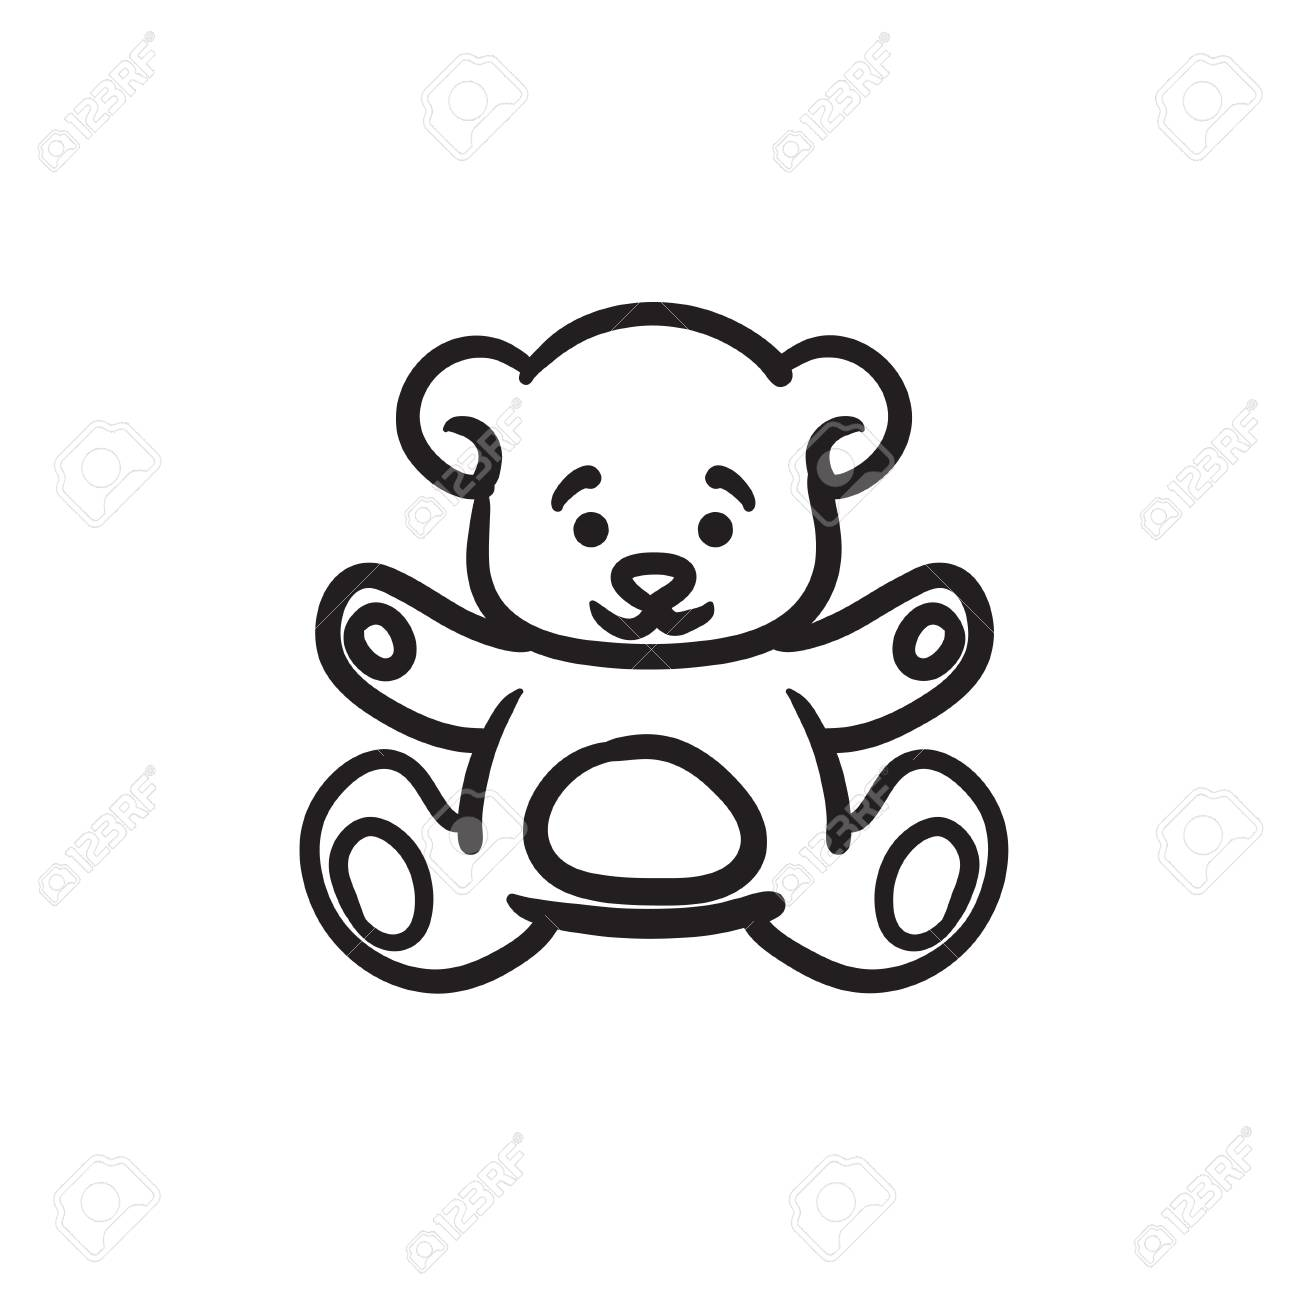 teddy bear vector sketch icon isolated on background hand drawn royalty free cliparts vectors and stock illustration image 72136922 teddy bear vector sketch icon isolated on background hand drawn